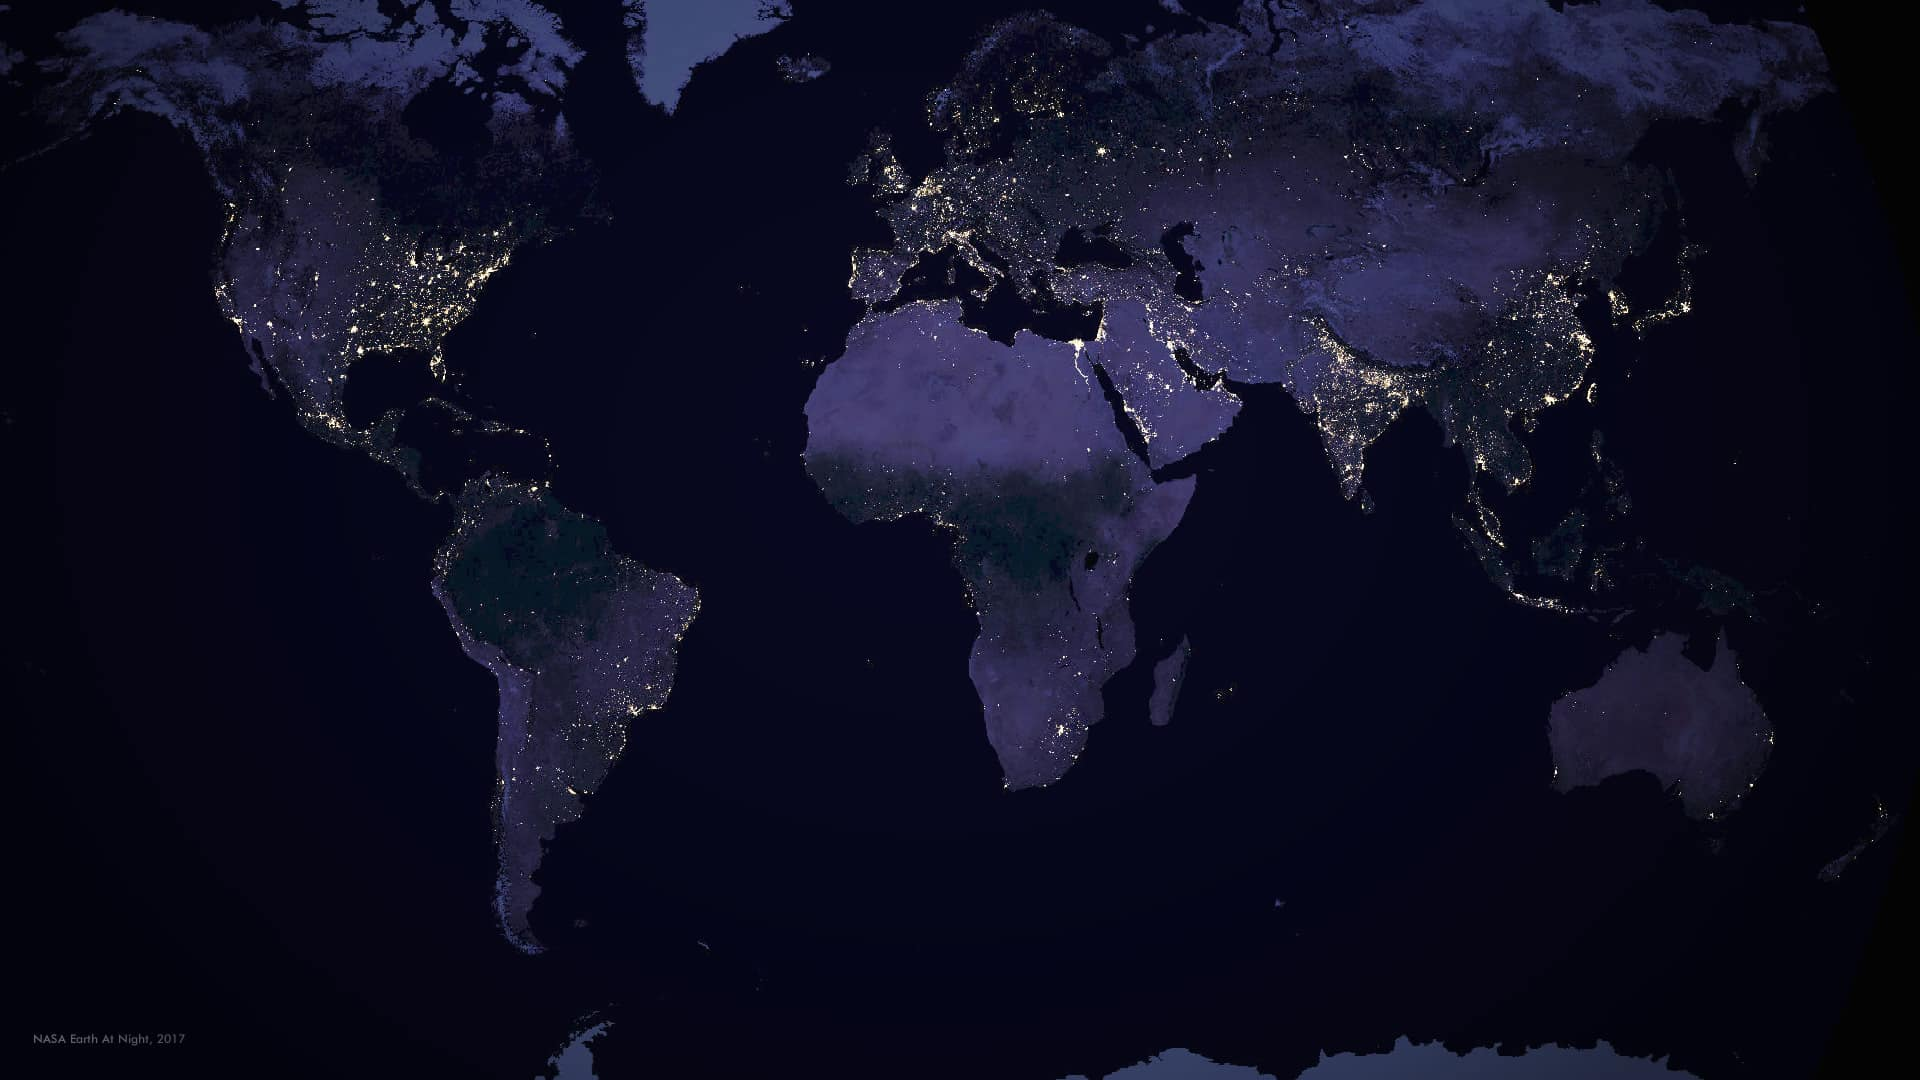 Viewpoint What Seeing The Earth At Night Reveals About Humanity